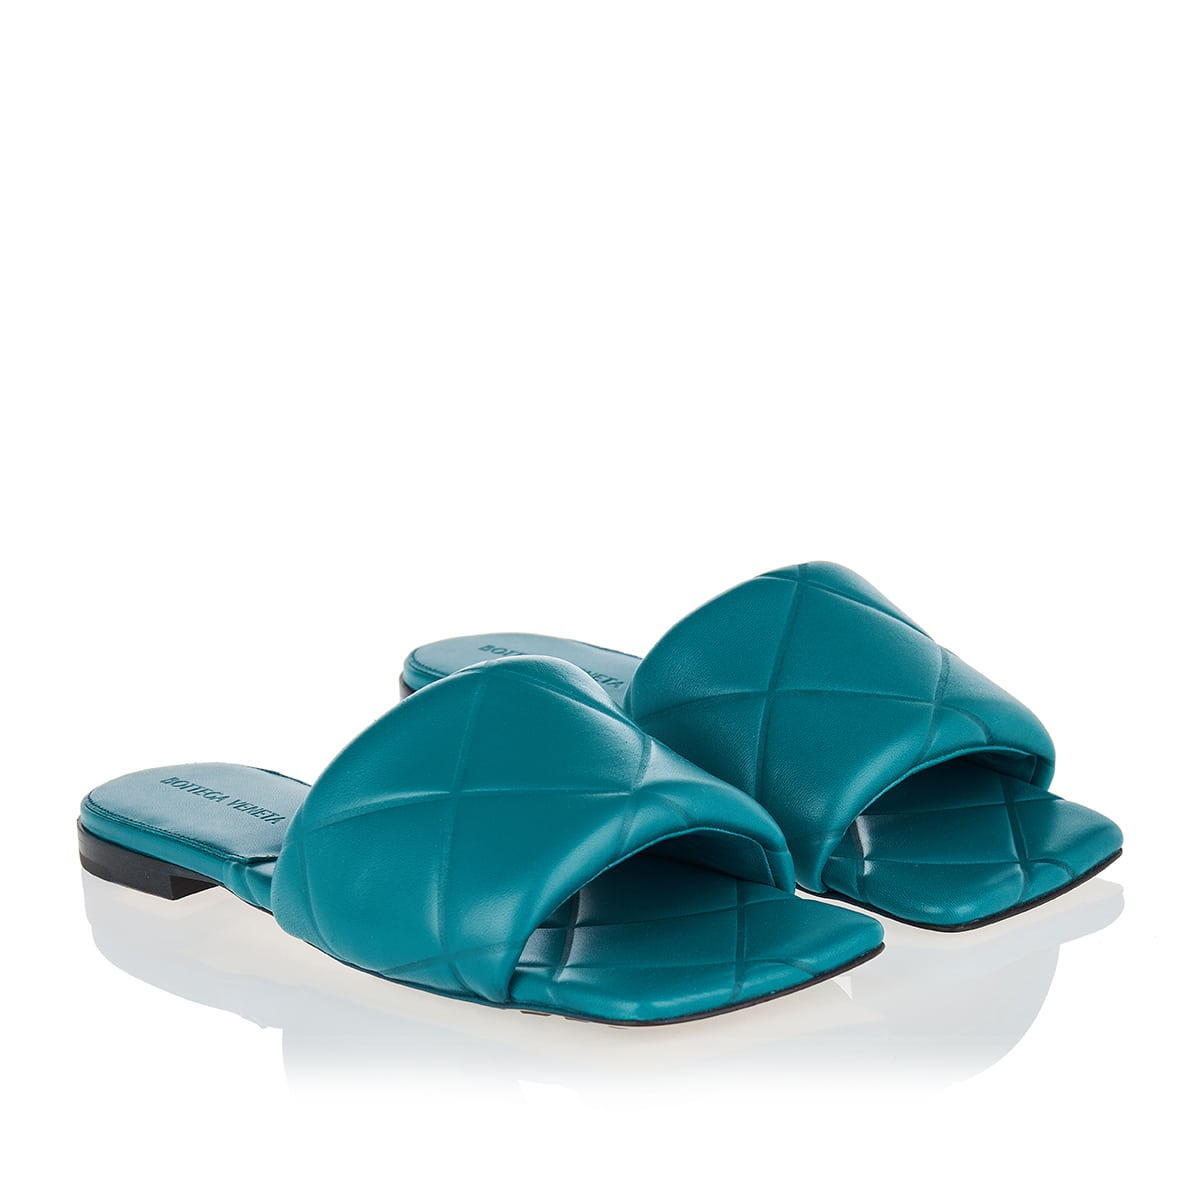 The Rubber Lido flat sandals